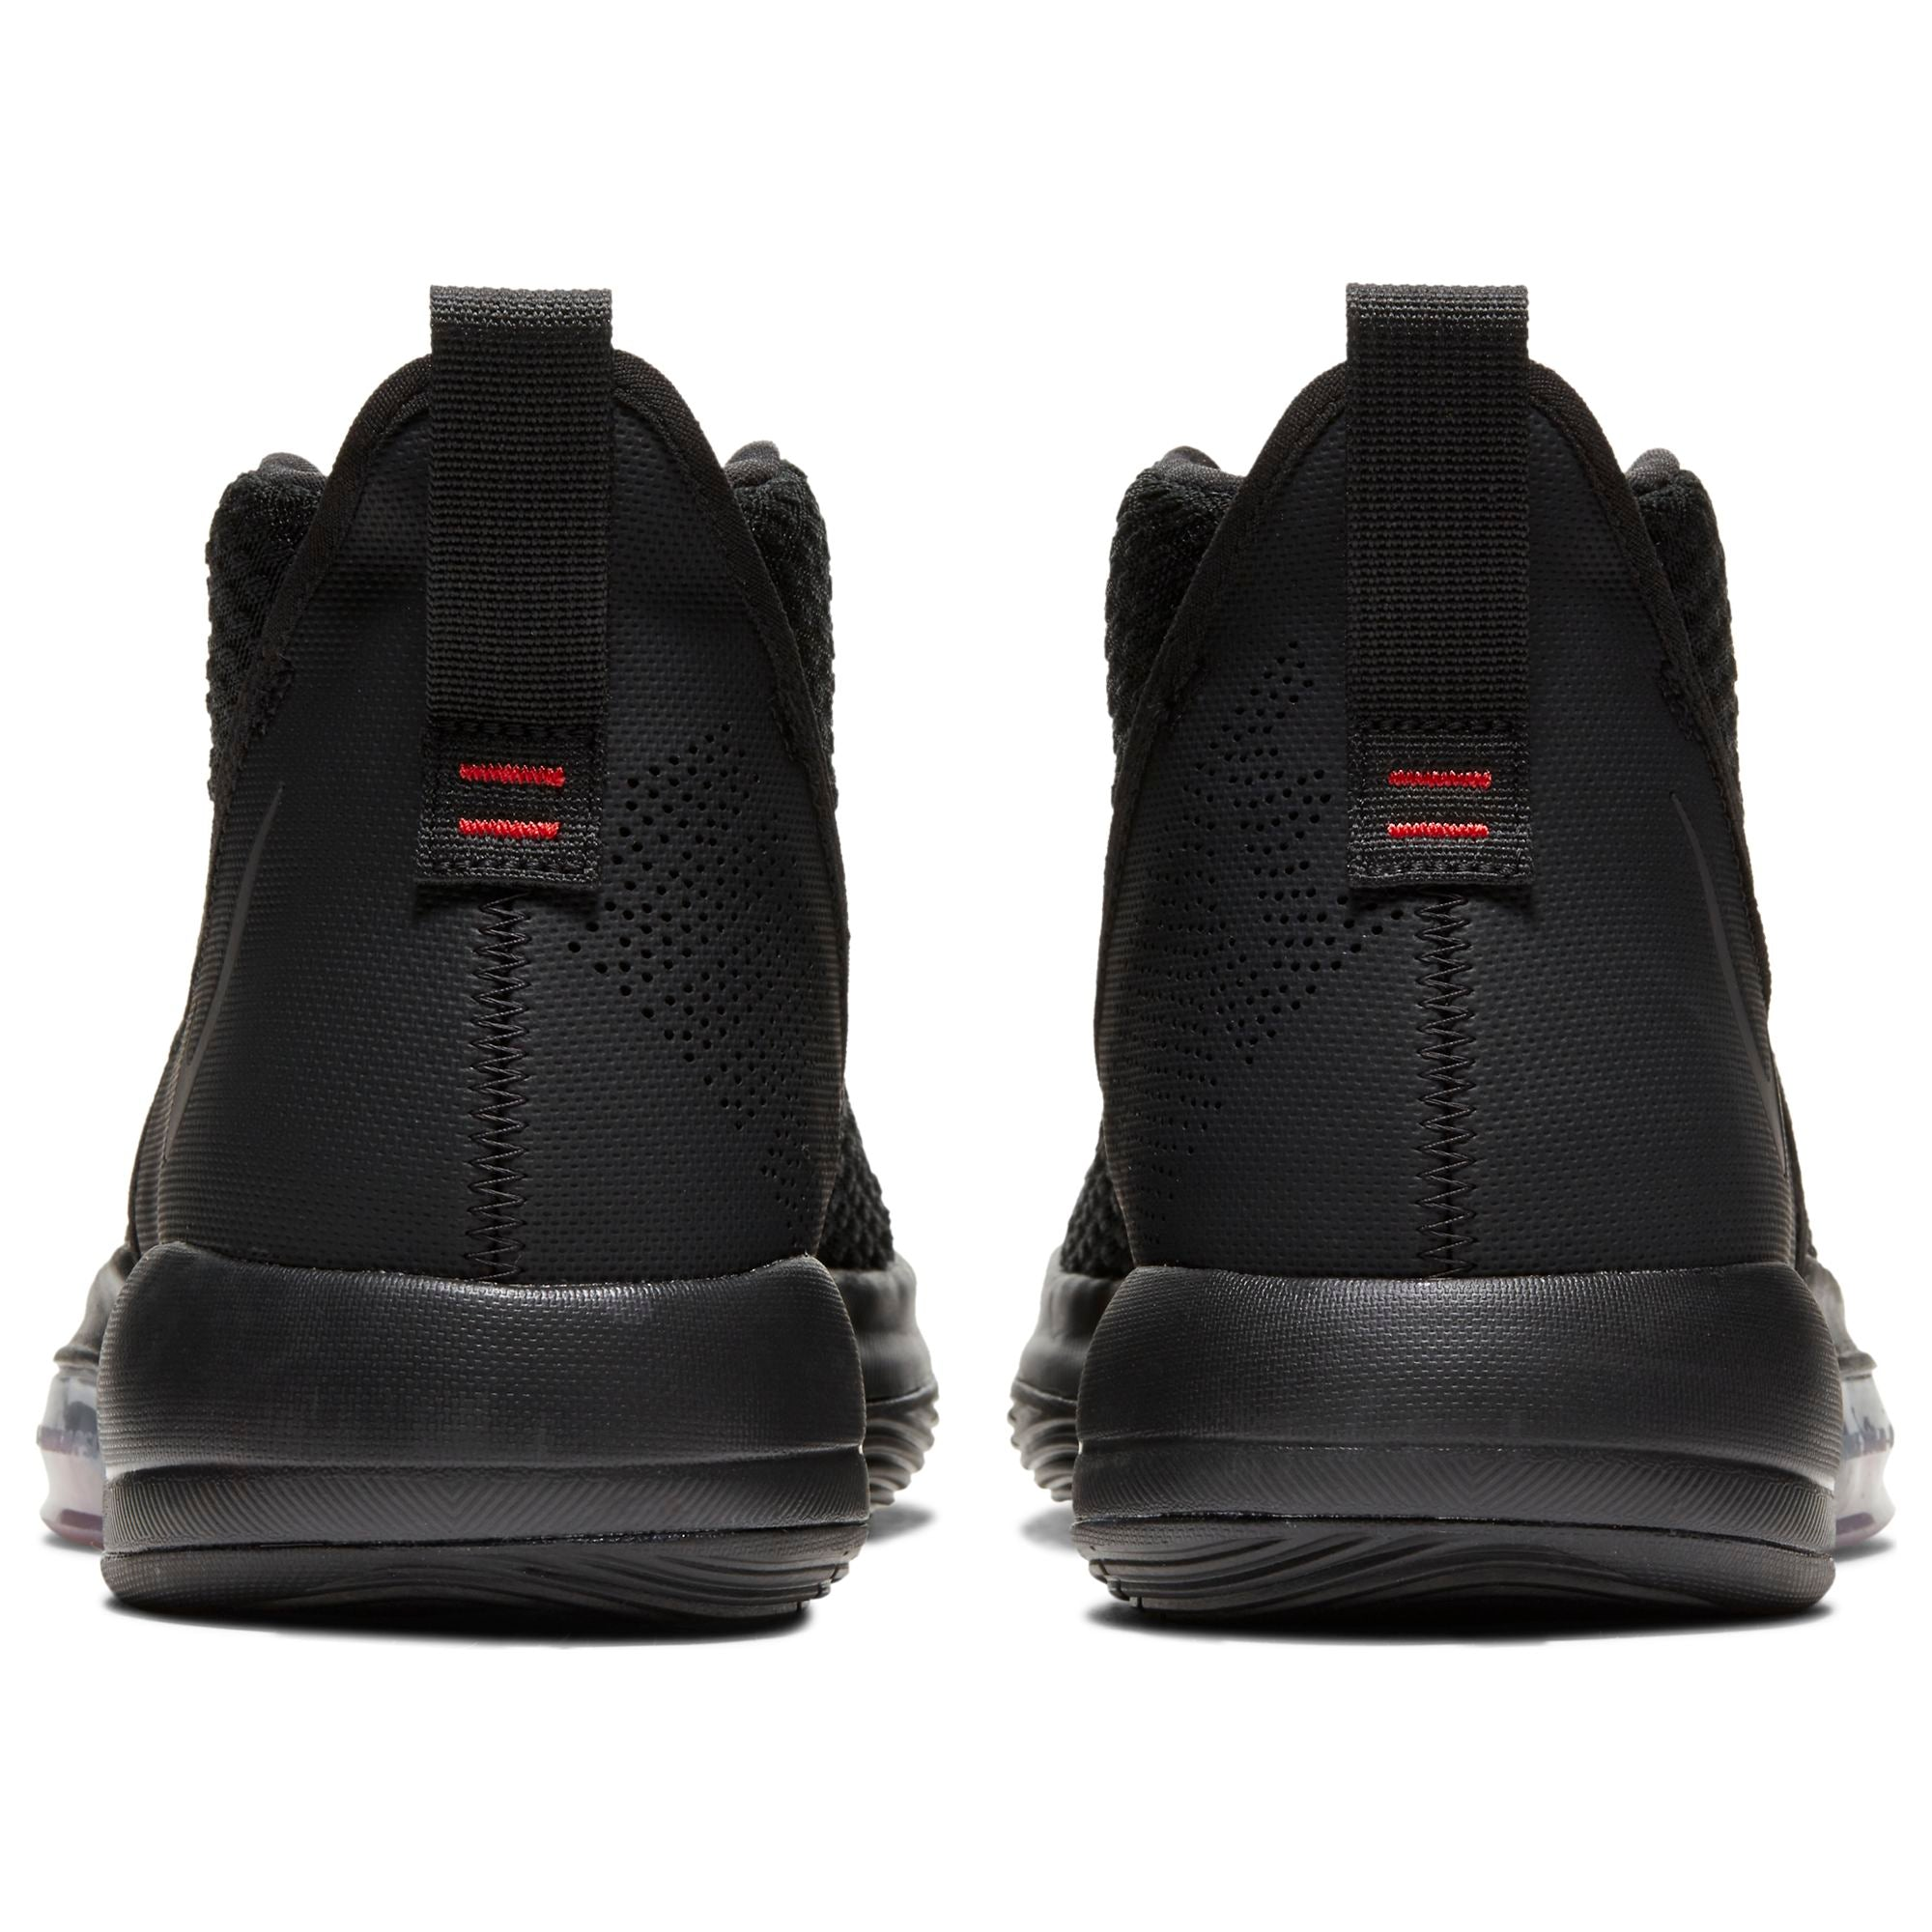 Nike Basketball Zoom Rize Boot/Shoe - Black